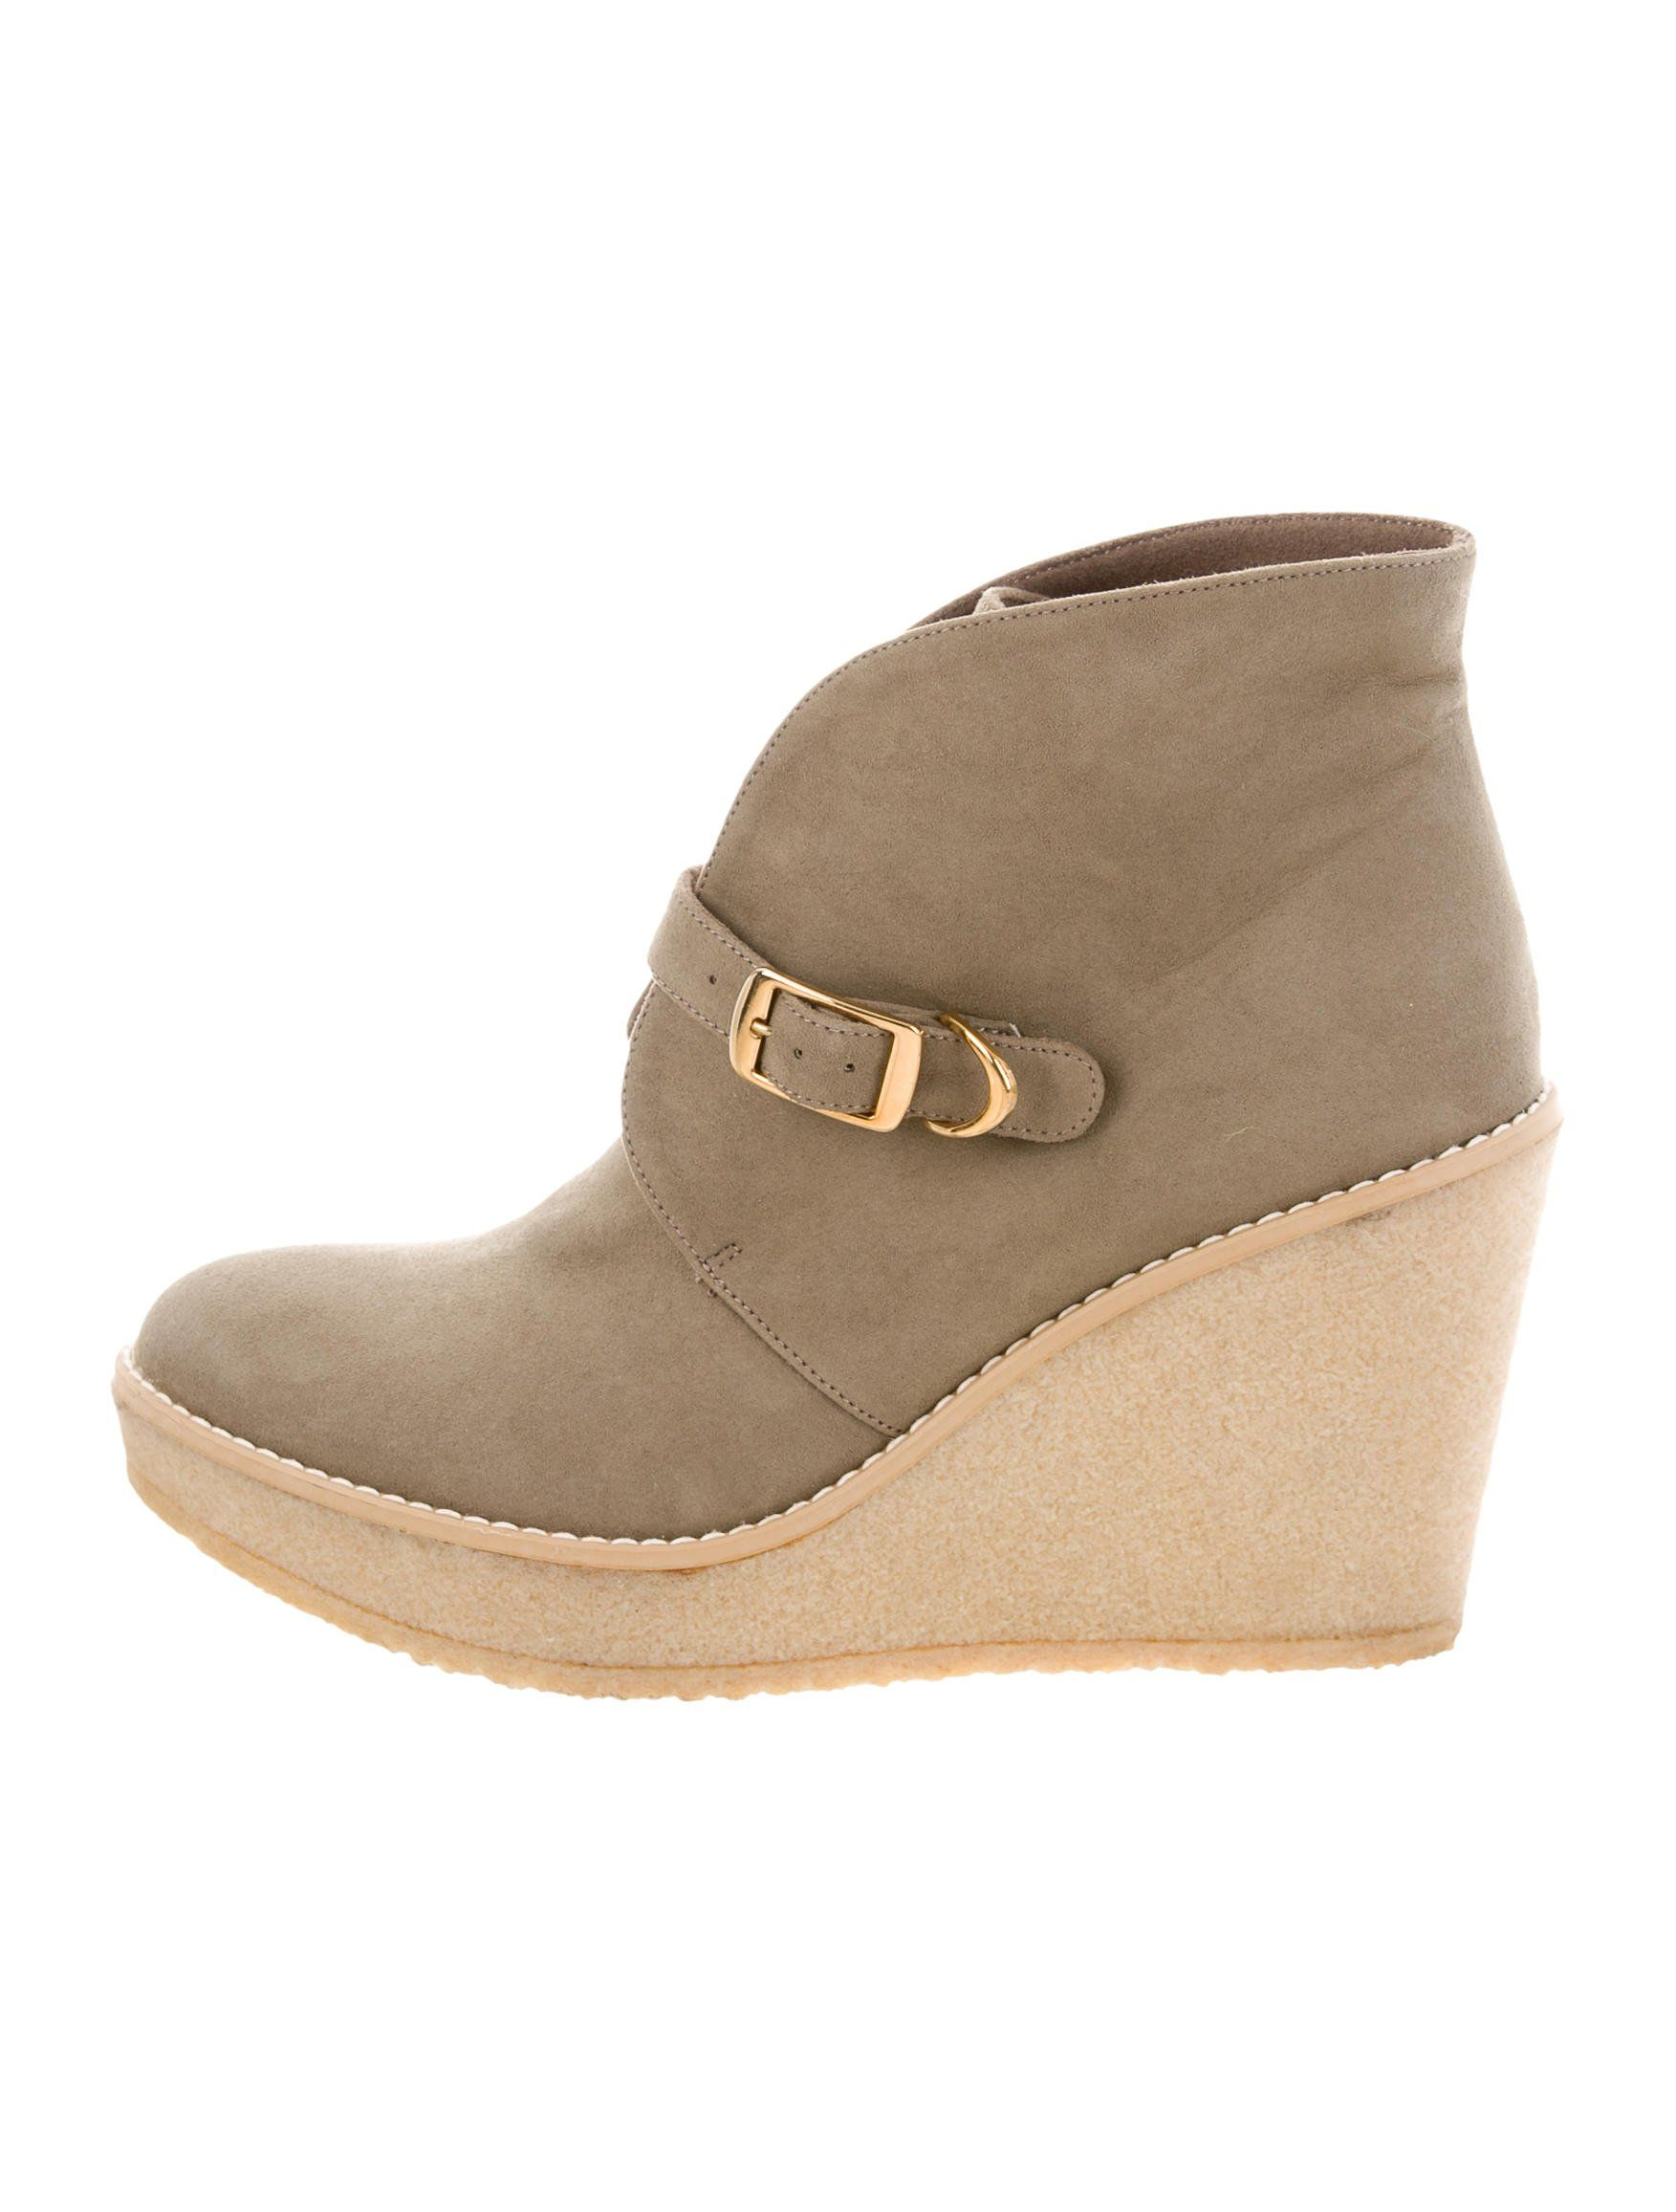 Stella McCartney Round-Toe Wedge Ankle Boots shop online soLhnzHu